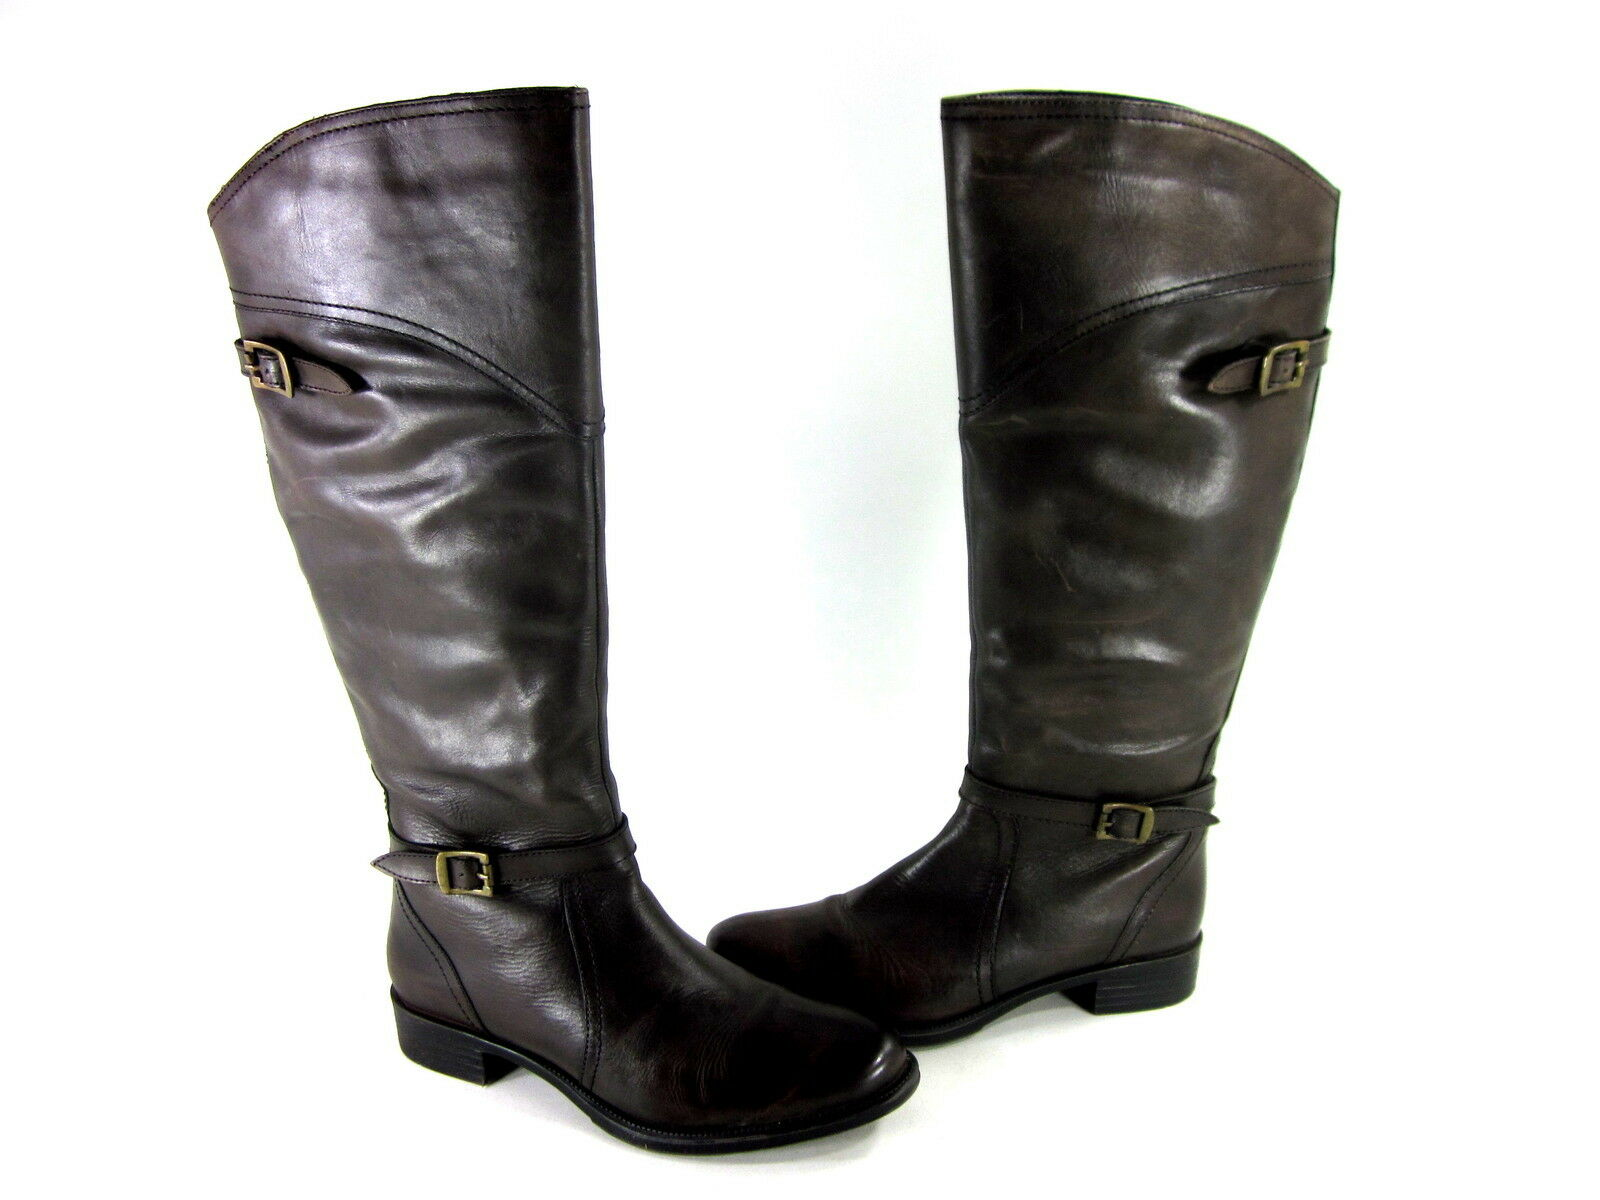 DIBA WOMEN'S THE WEEK END KNEE-HIGH FASHION BOOTS BROWN LEATHER US SIZE 9.5 MED